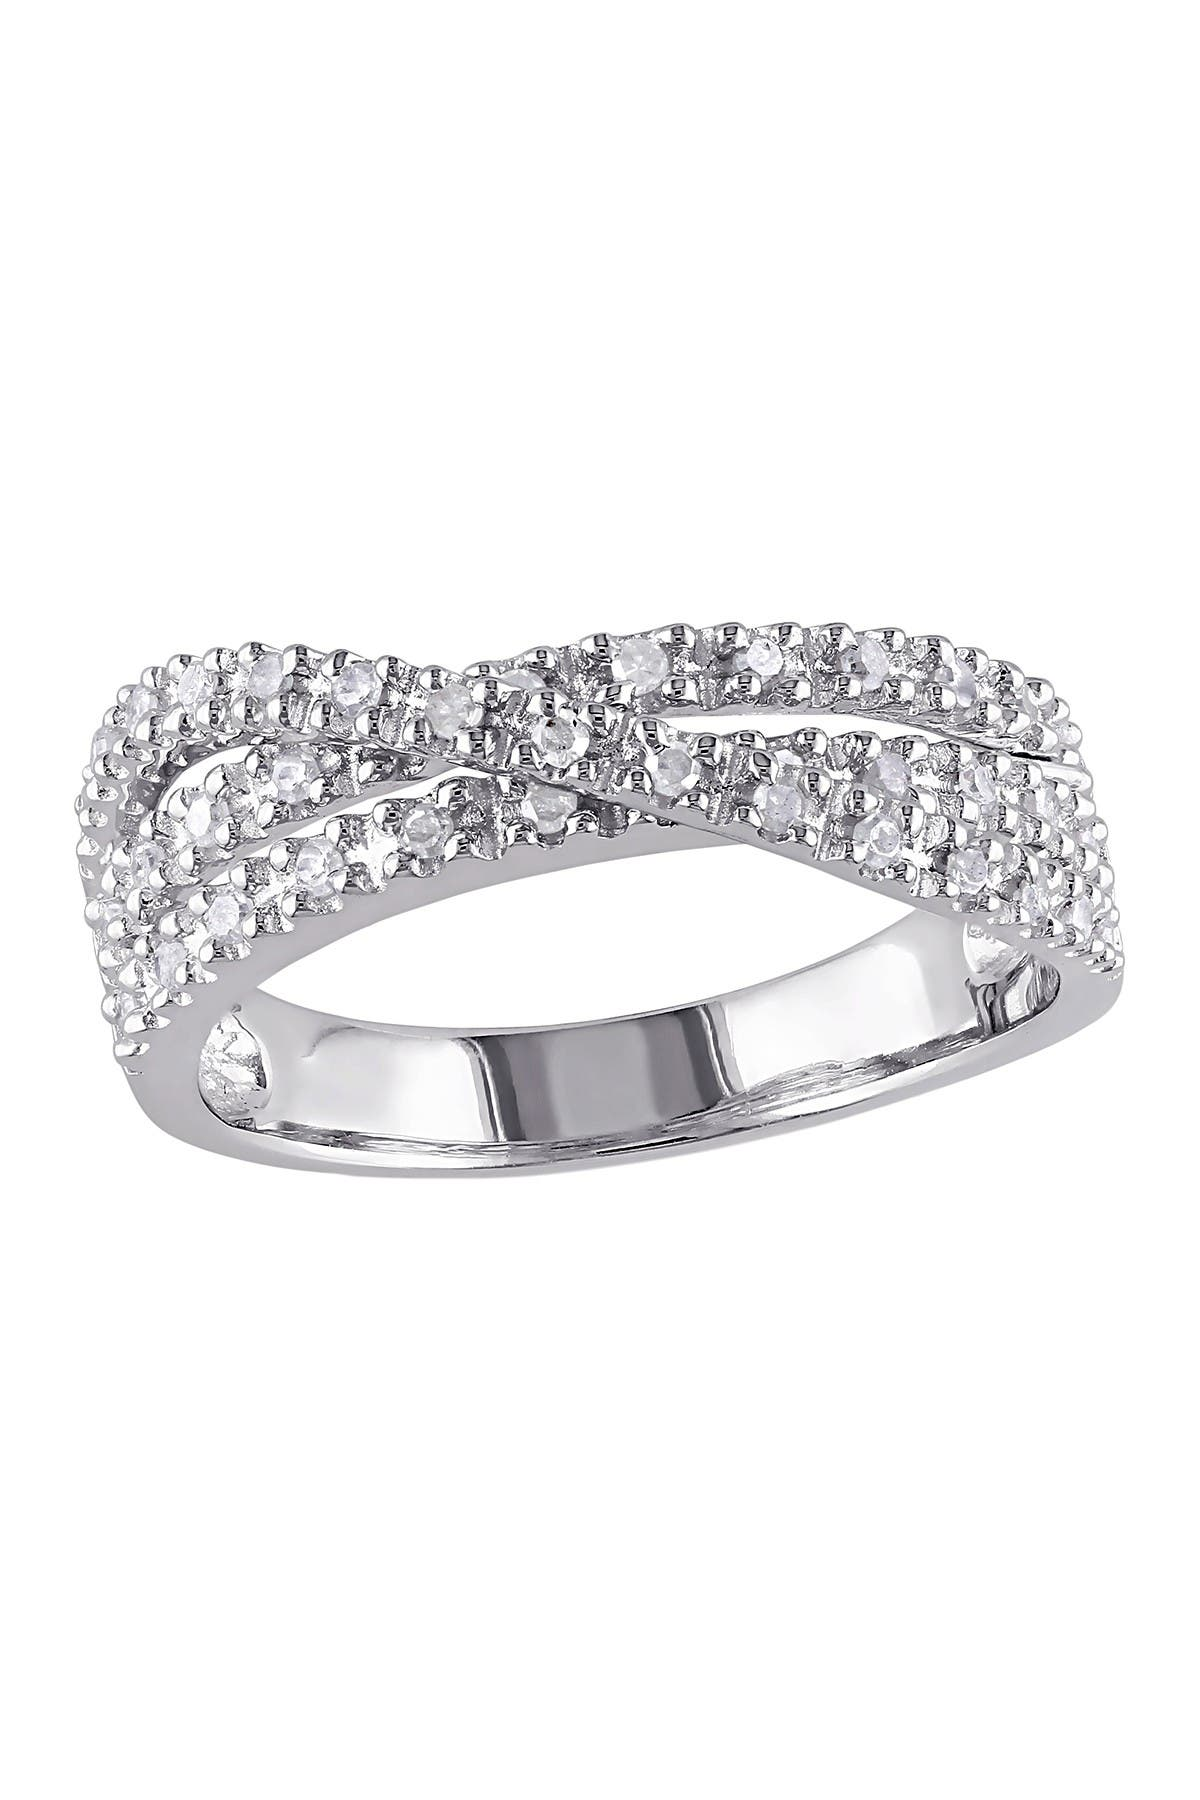 Image of Delmar Sterling Silver Multi Twist Pave Diamond Ring - 0.25 ctw